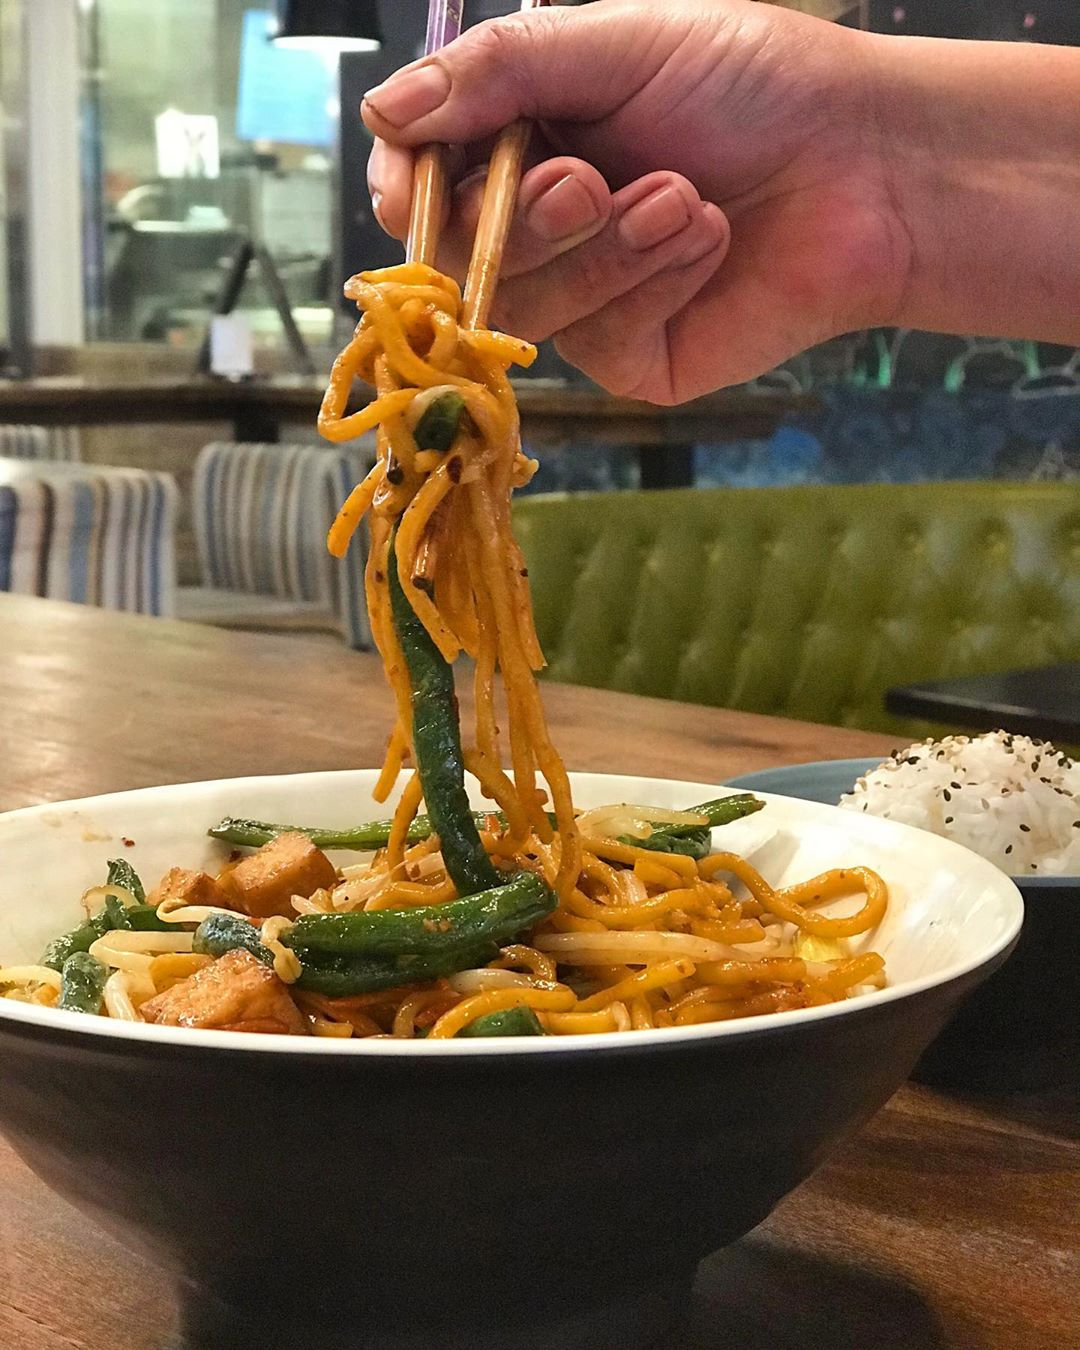 It's Wok Your Way Wednesday at @littlemasatally #OnMadison! Order any mouthwatering Wok Your Way dish and receive a complimentary additional veggie with your purchase. Little Masa is open from 12-9 p.m. everyday for call-in/take out orders and also offers F R E E delivery through @ubereats. Don't wait; support this delicious, local restaurant and order now!